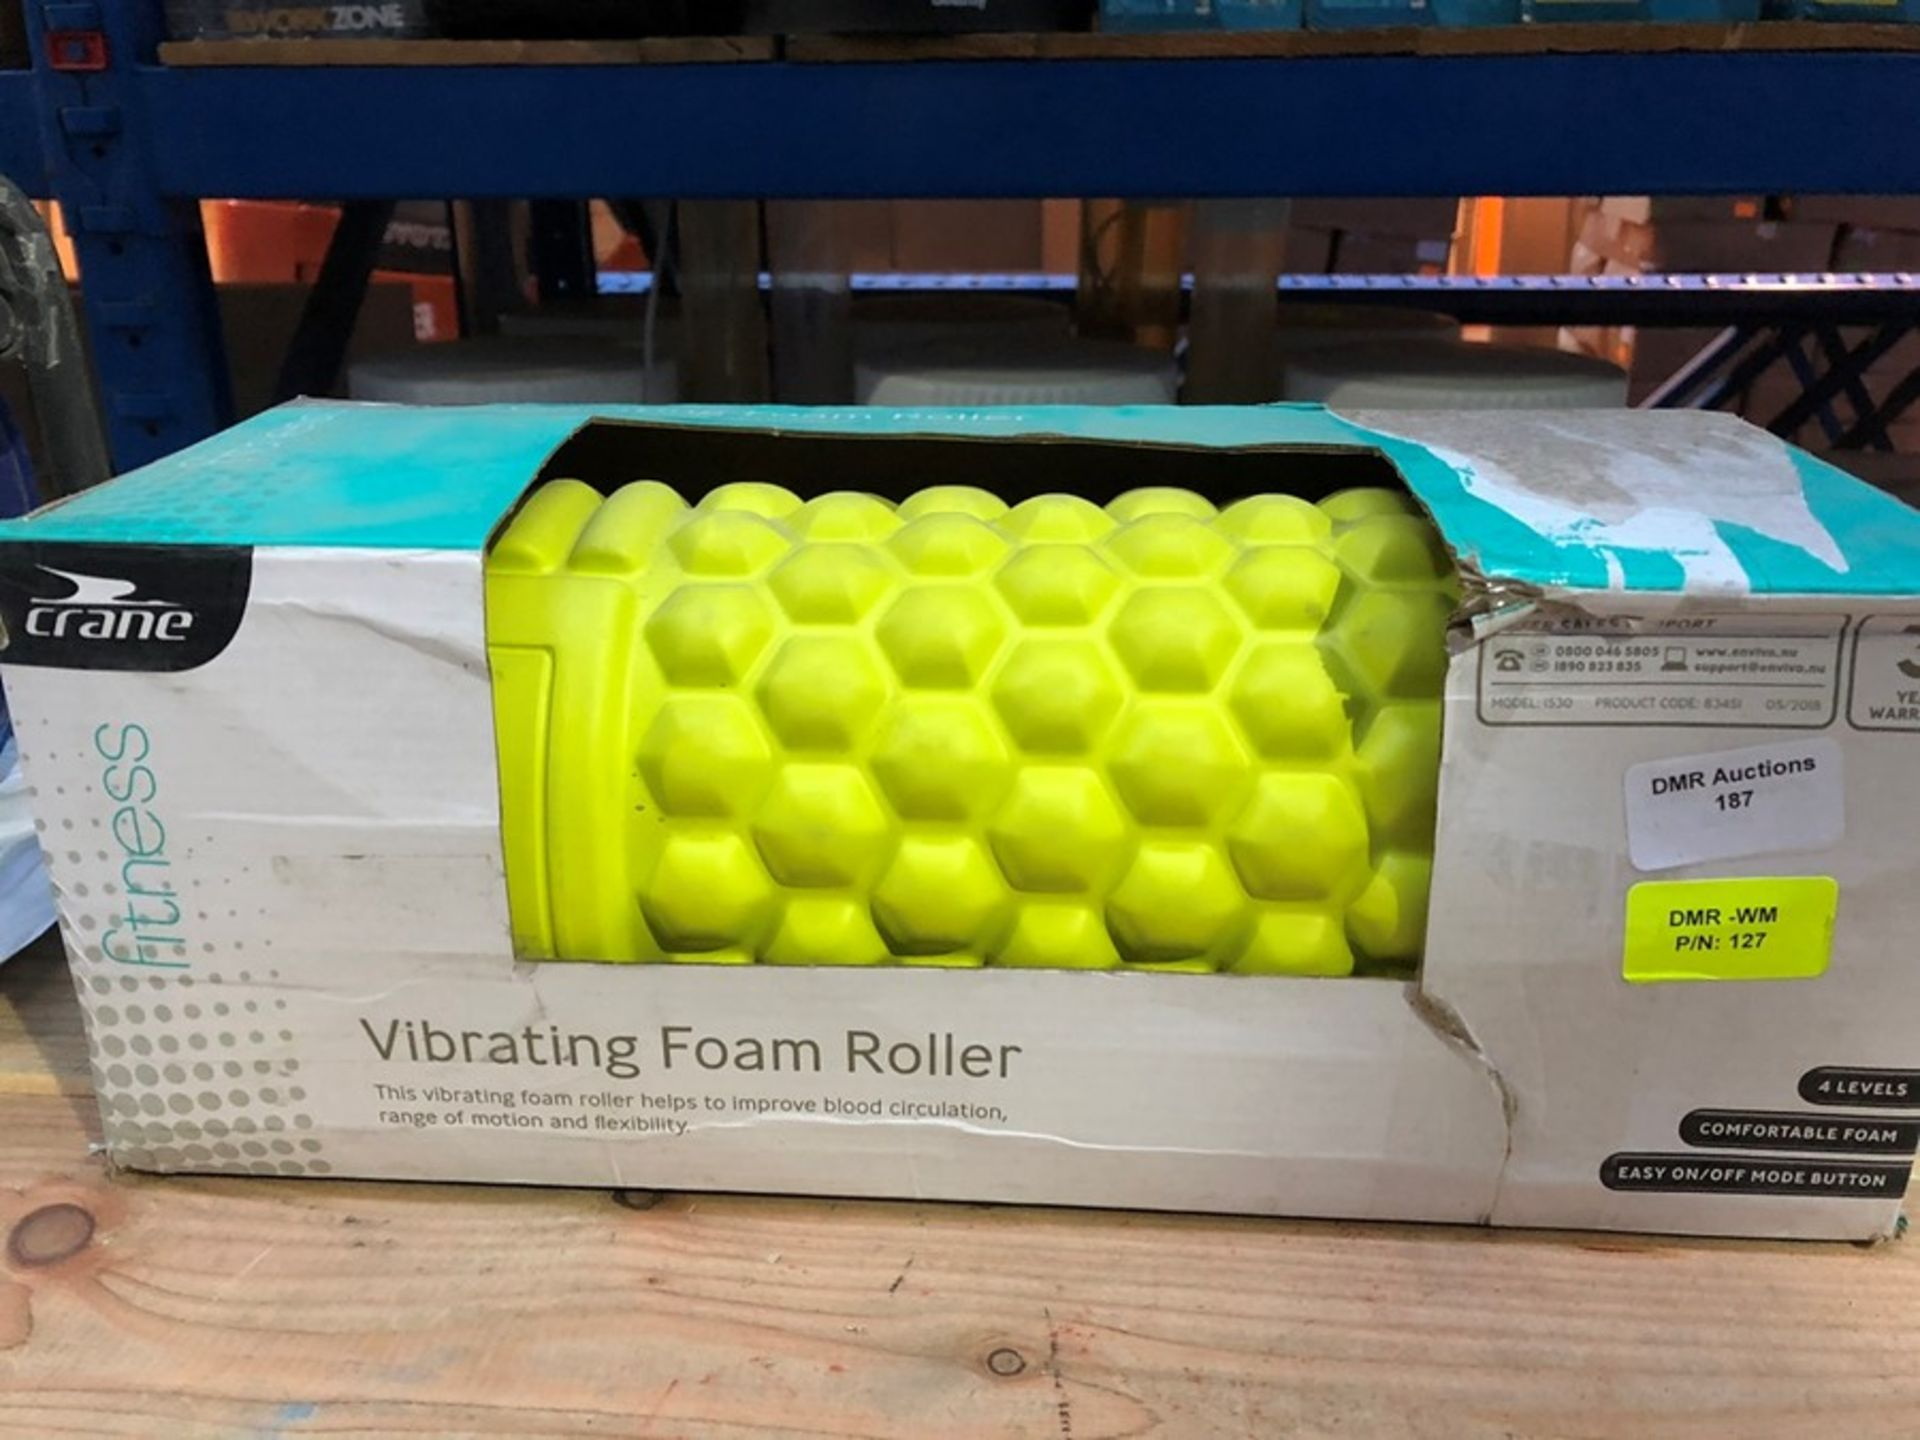 Lot 188 - 1 BOXED CRANE VIBRATING FOAM ROLLER / RRP £24.99 (PUBLIC VIEWING AVAILABLE)